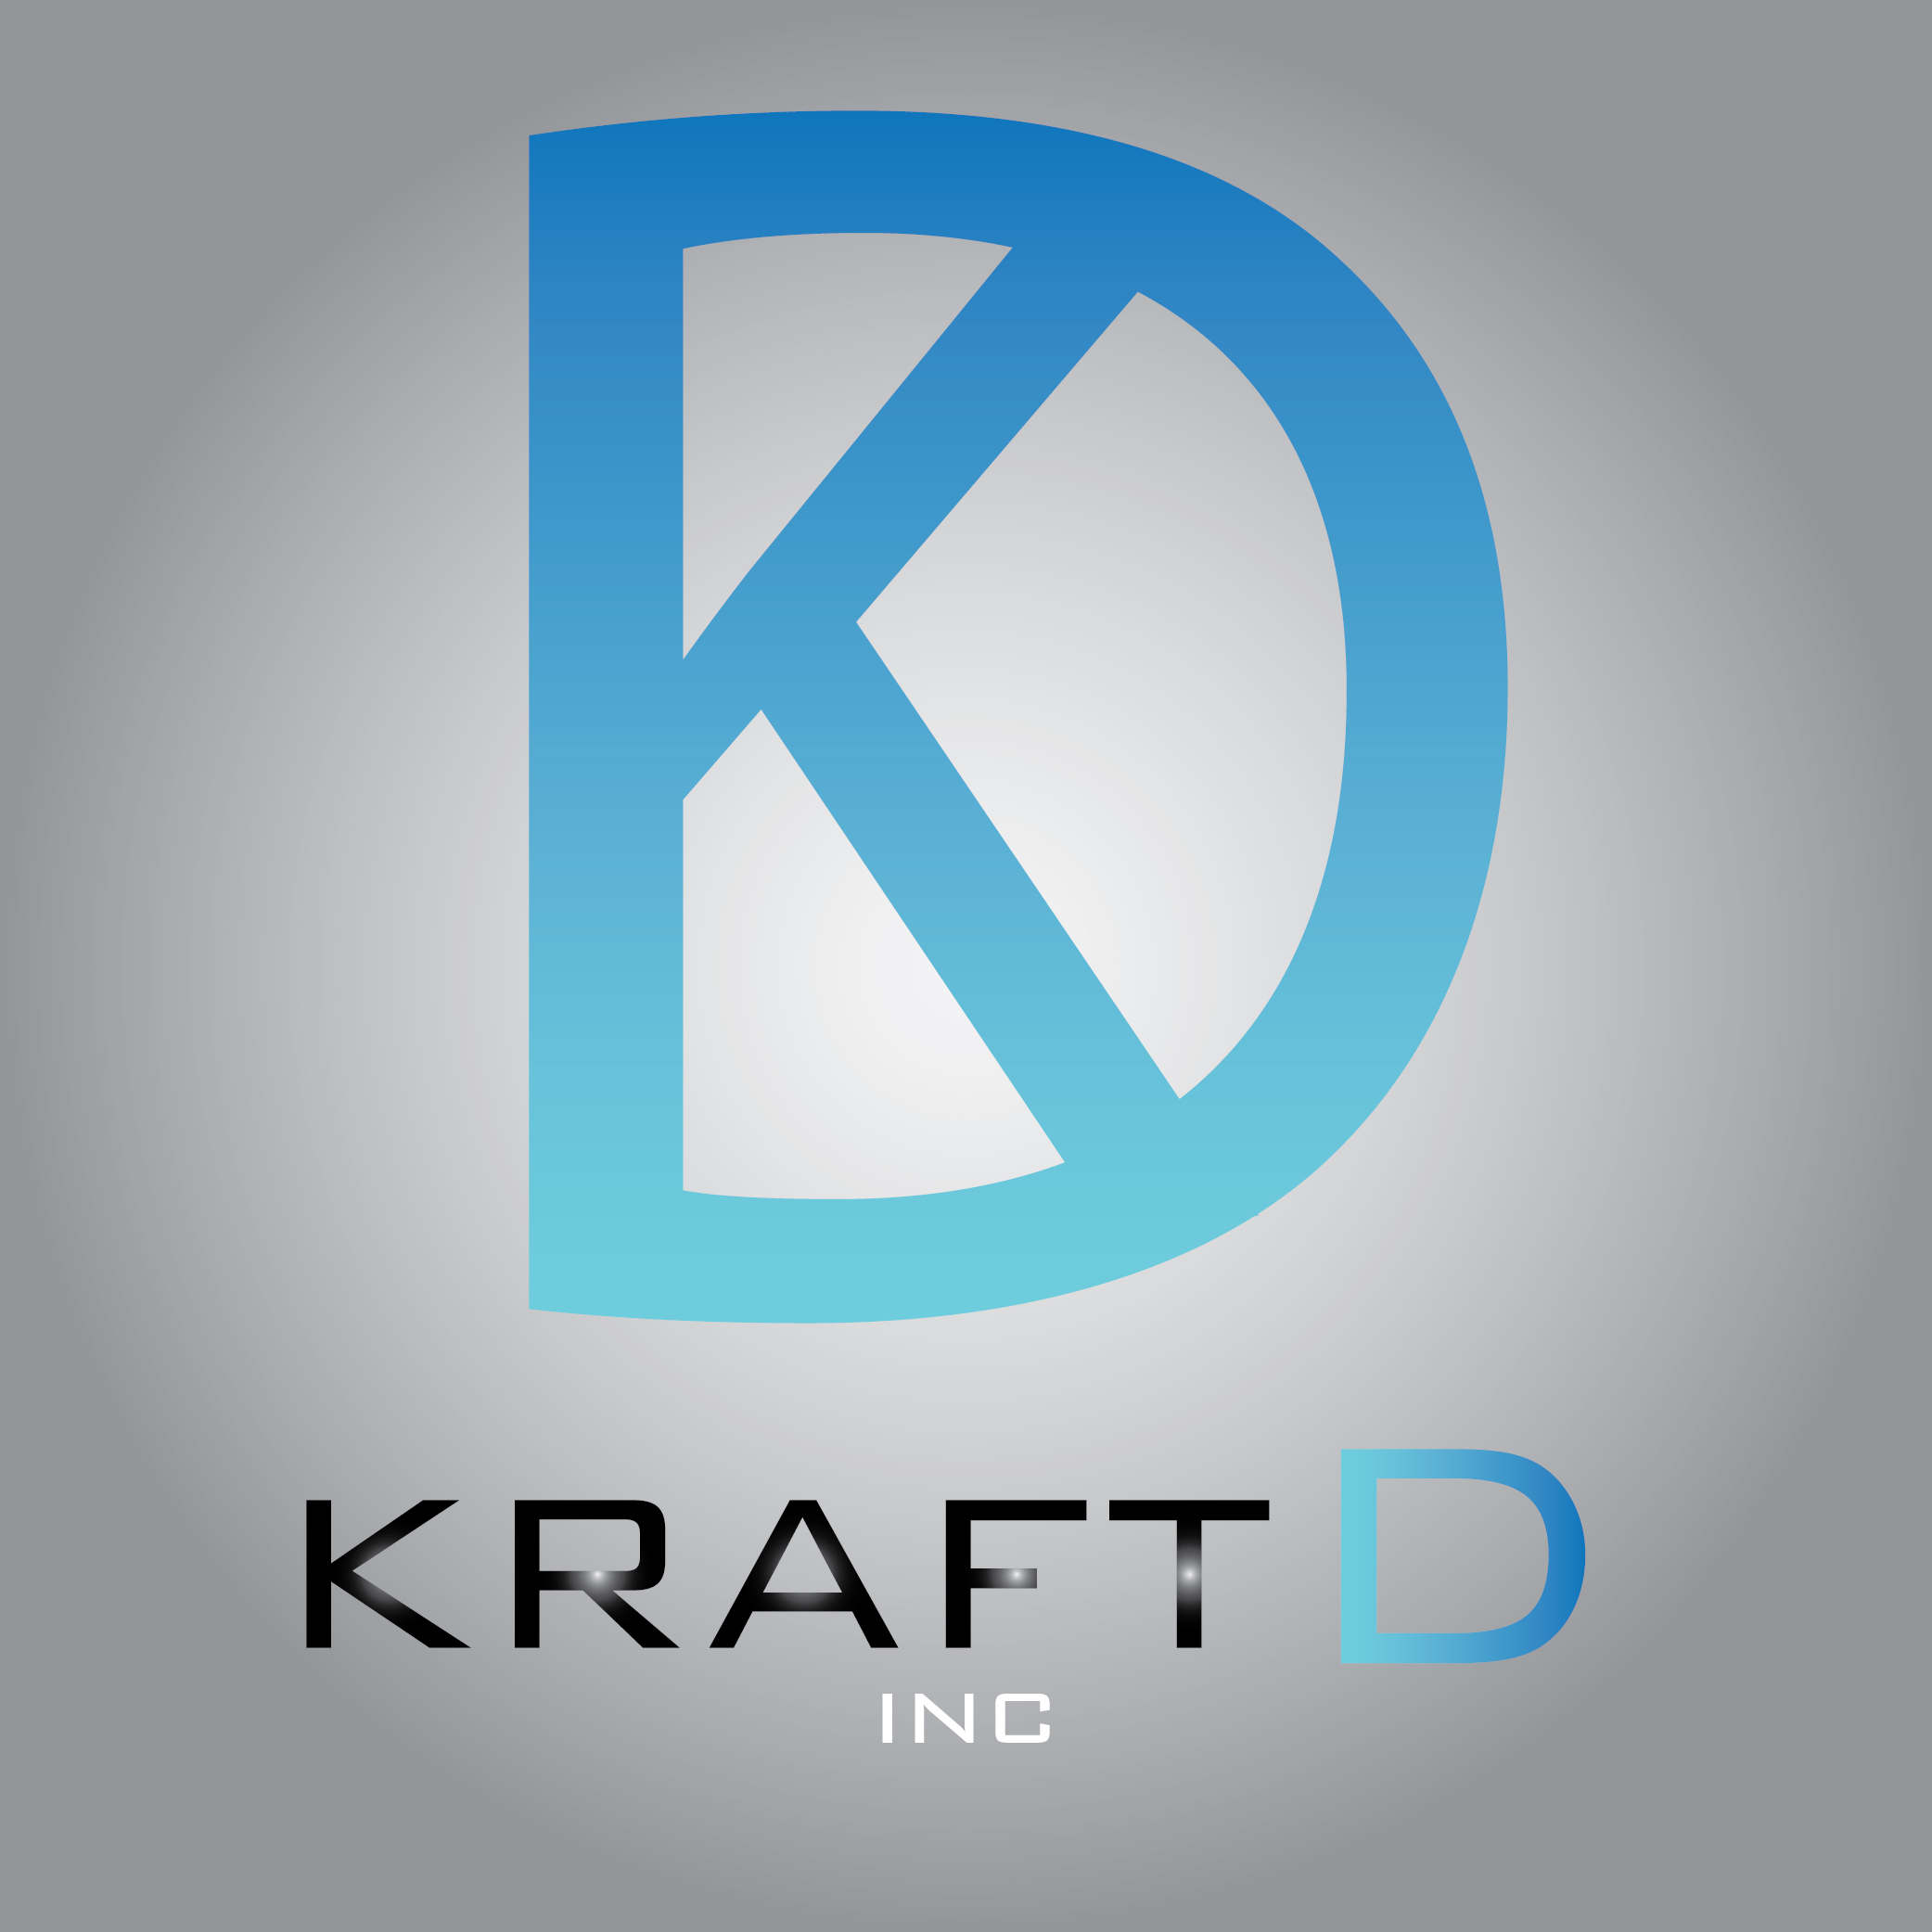 Logo Design by Private User - Entry No. 321 in the Logo Design Contest Unique Logo Design Wanted for Kraft D Inc.